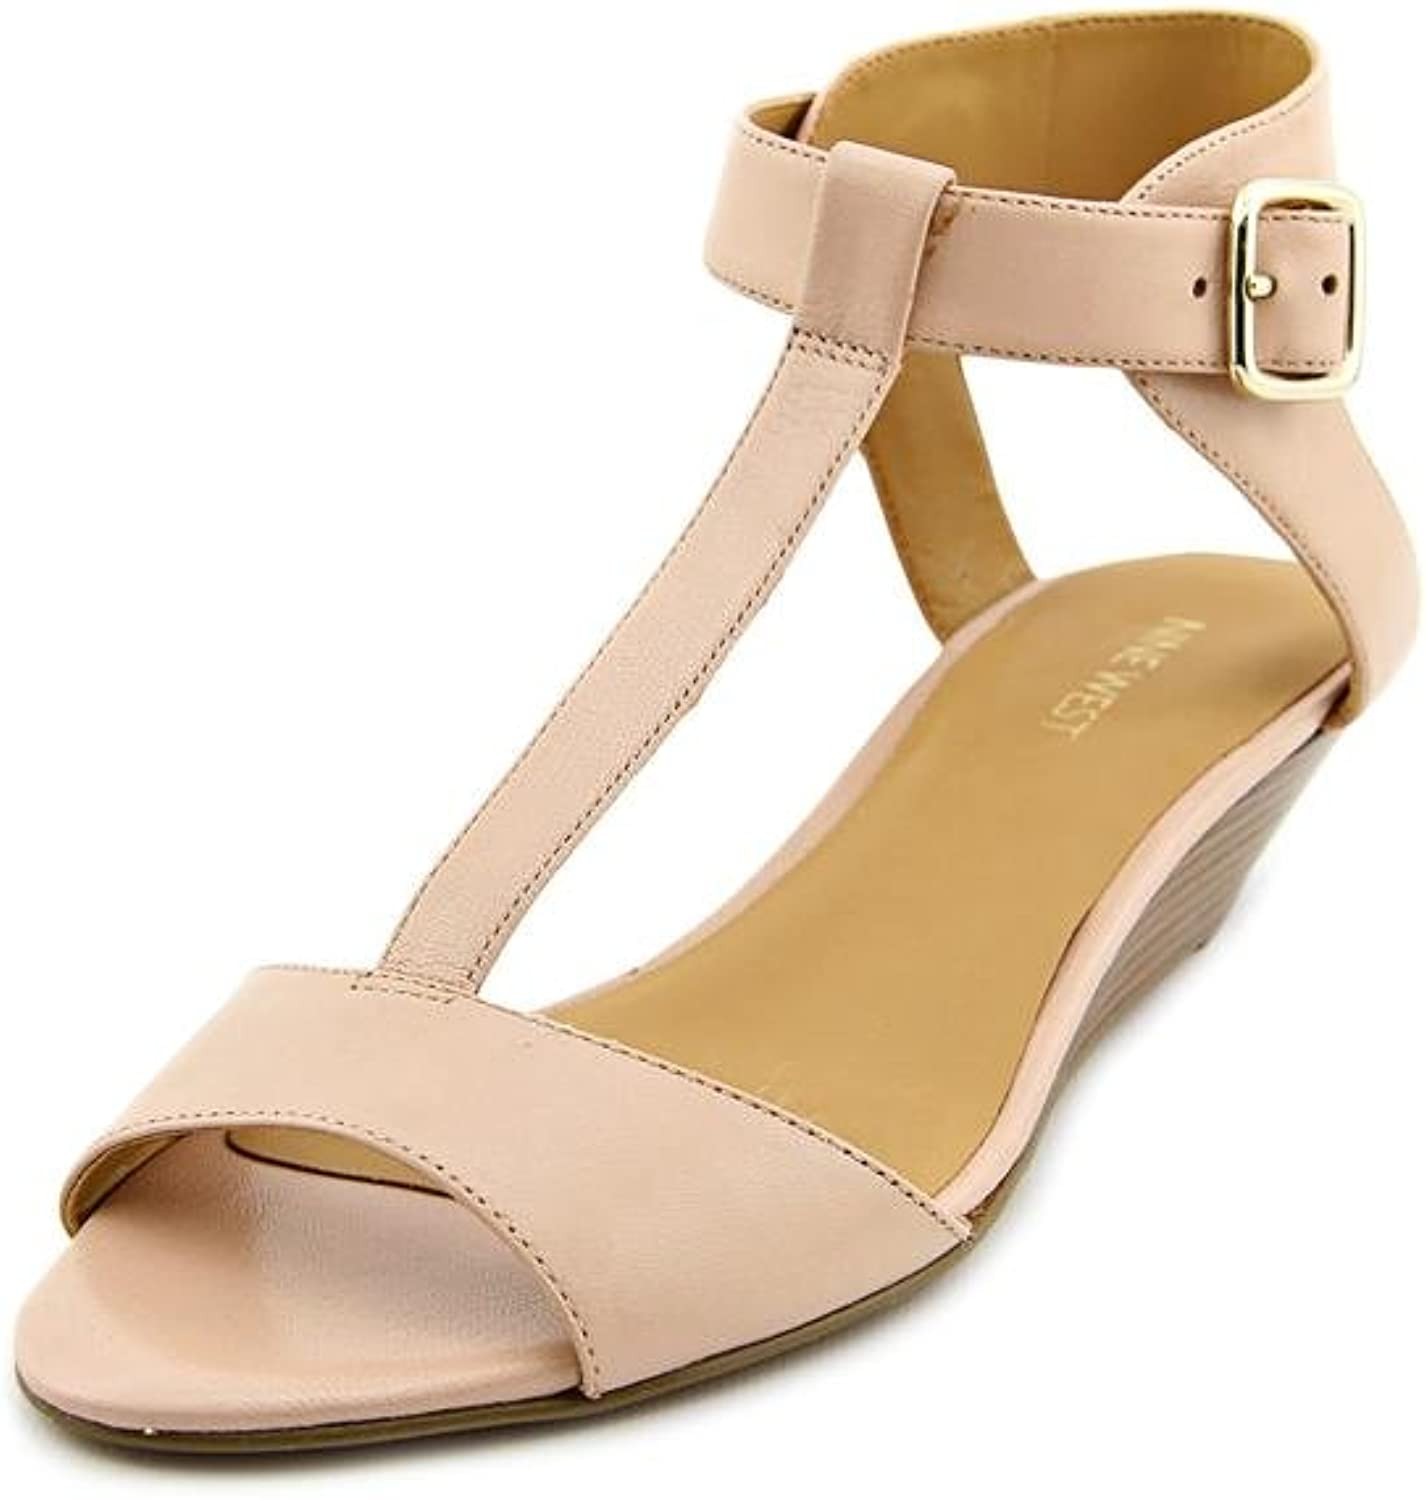 Nine West Verucha Womens US Size 7.5 Nude Leather Dress Sandals shoes